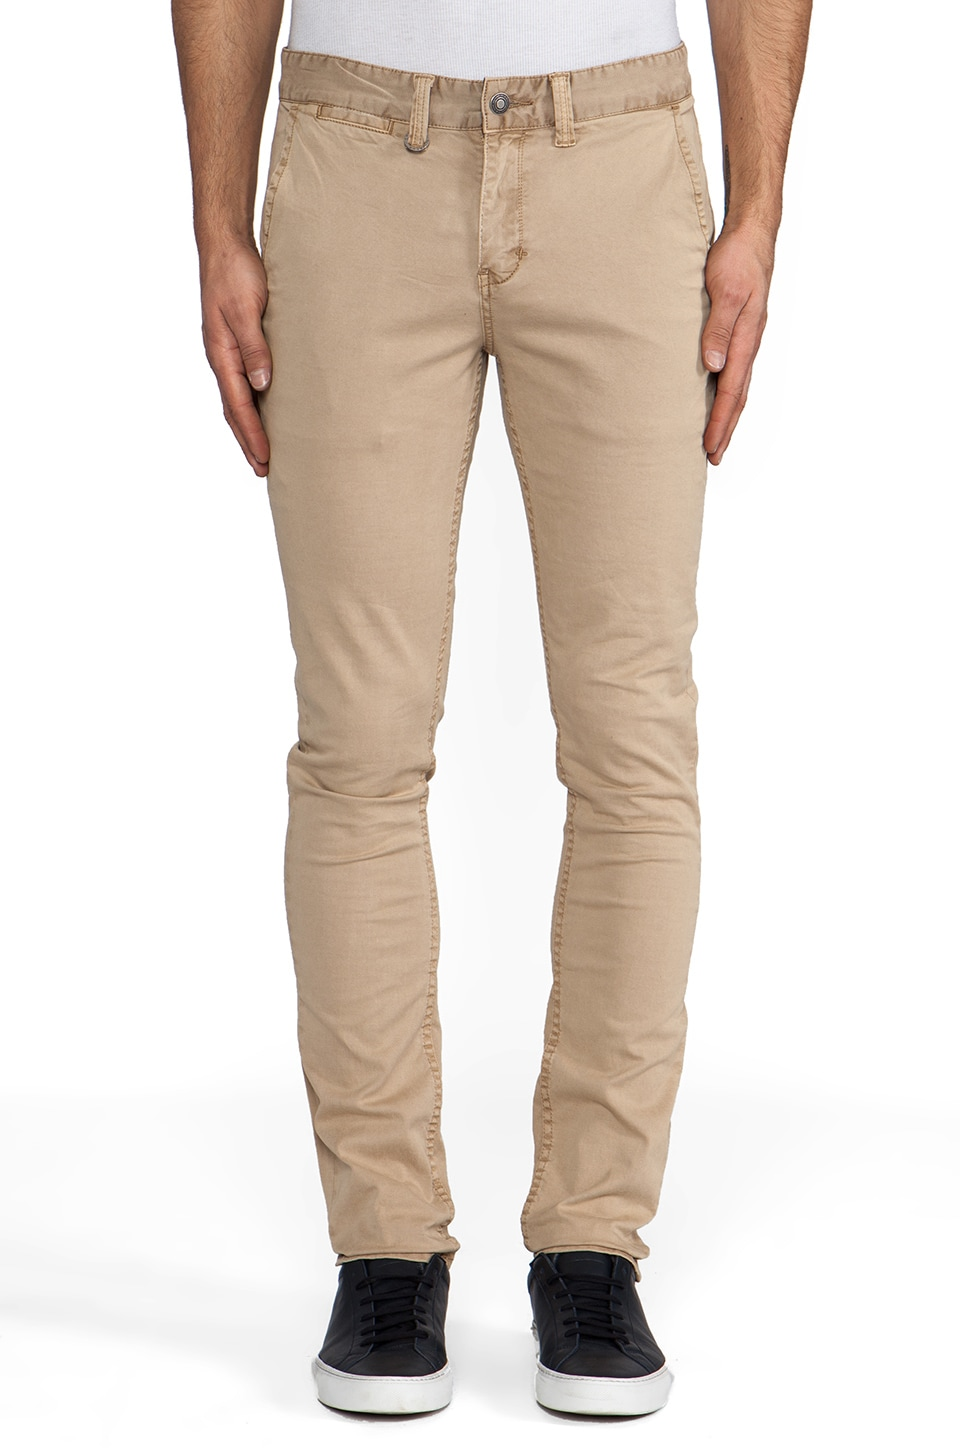 NEUW Slim Chino in Sand